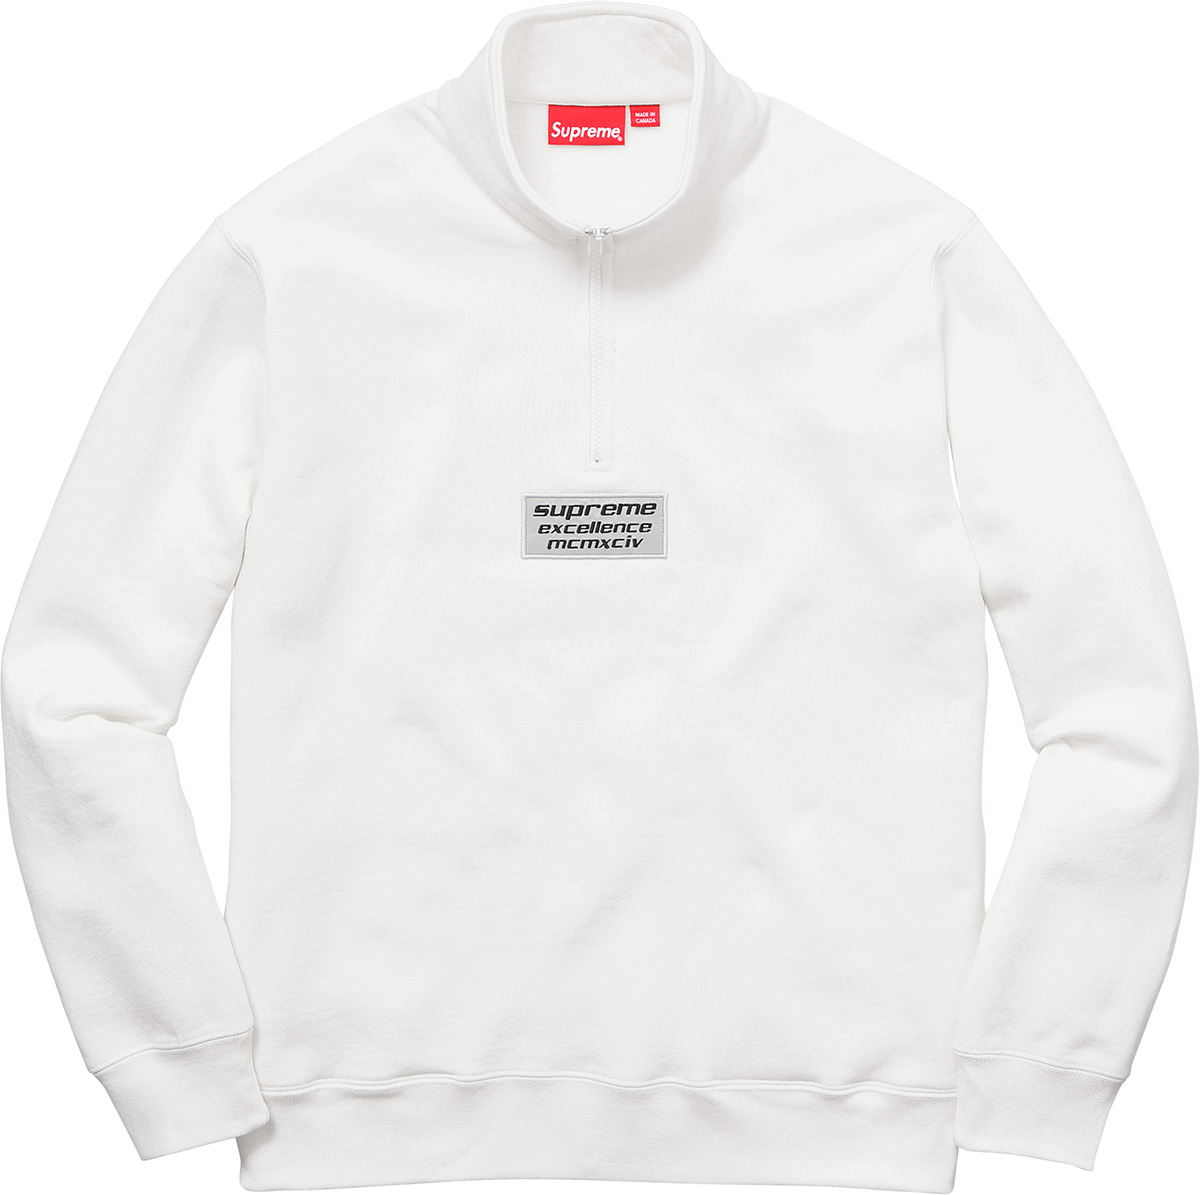 supreme-online-store-20170415-release-items